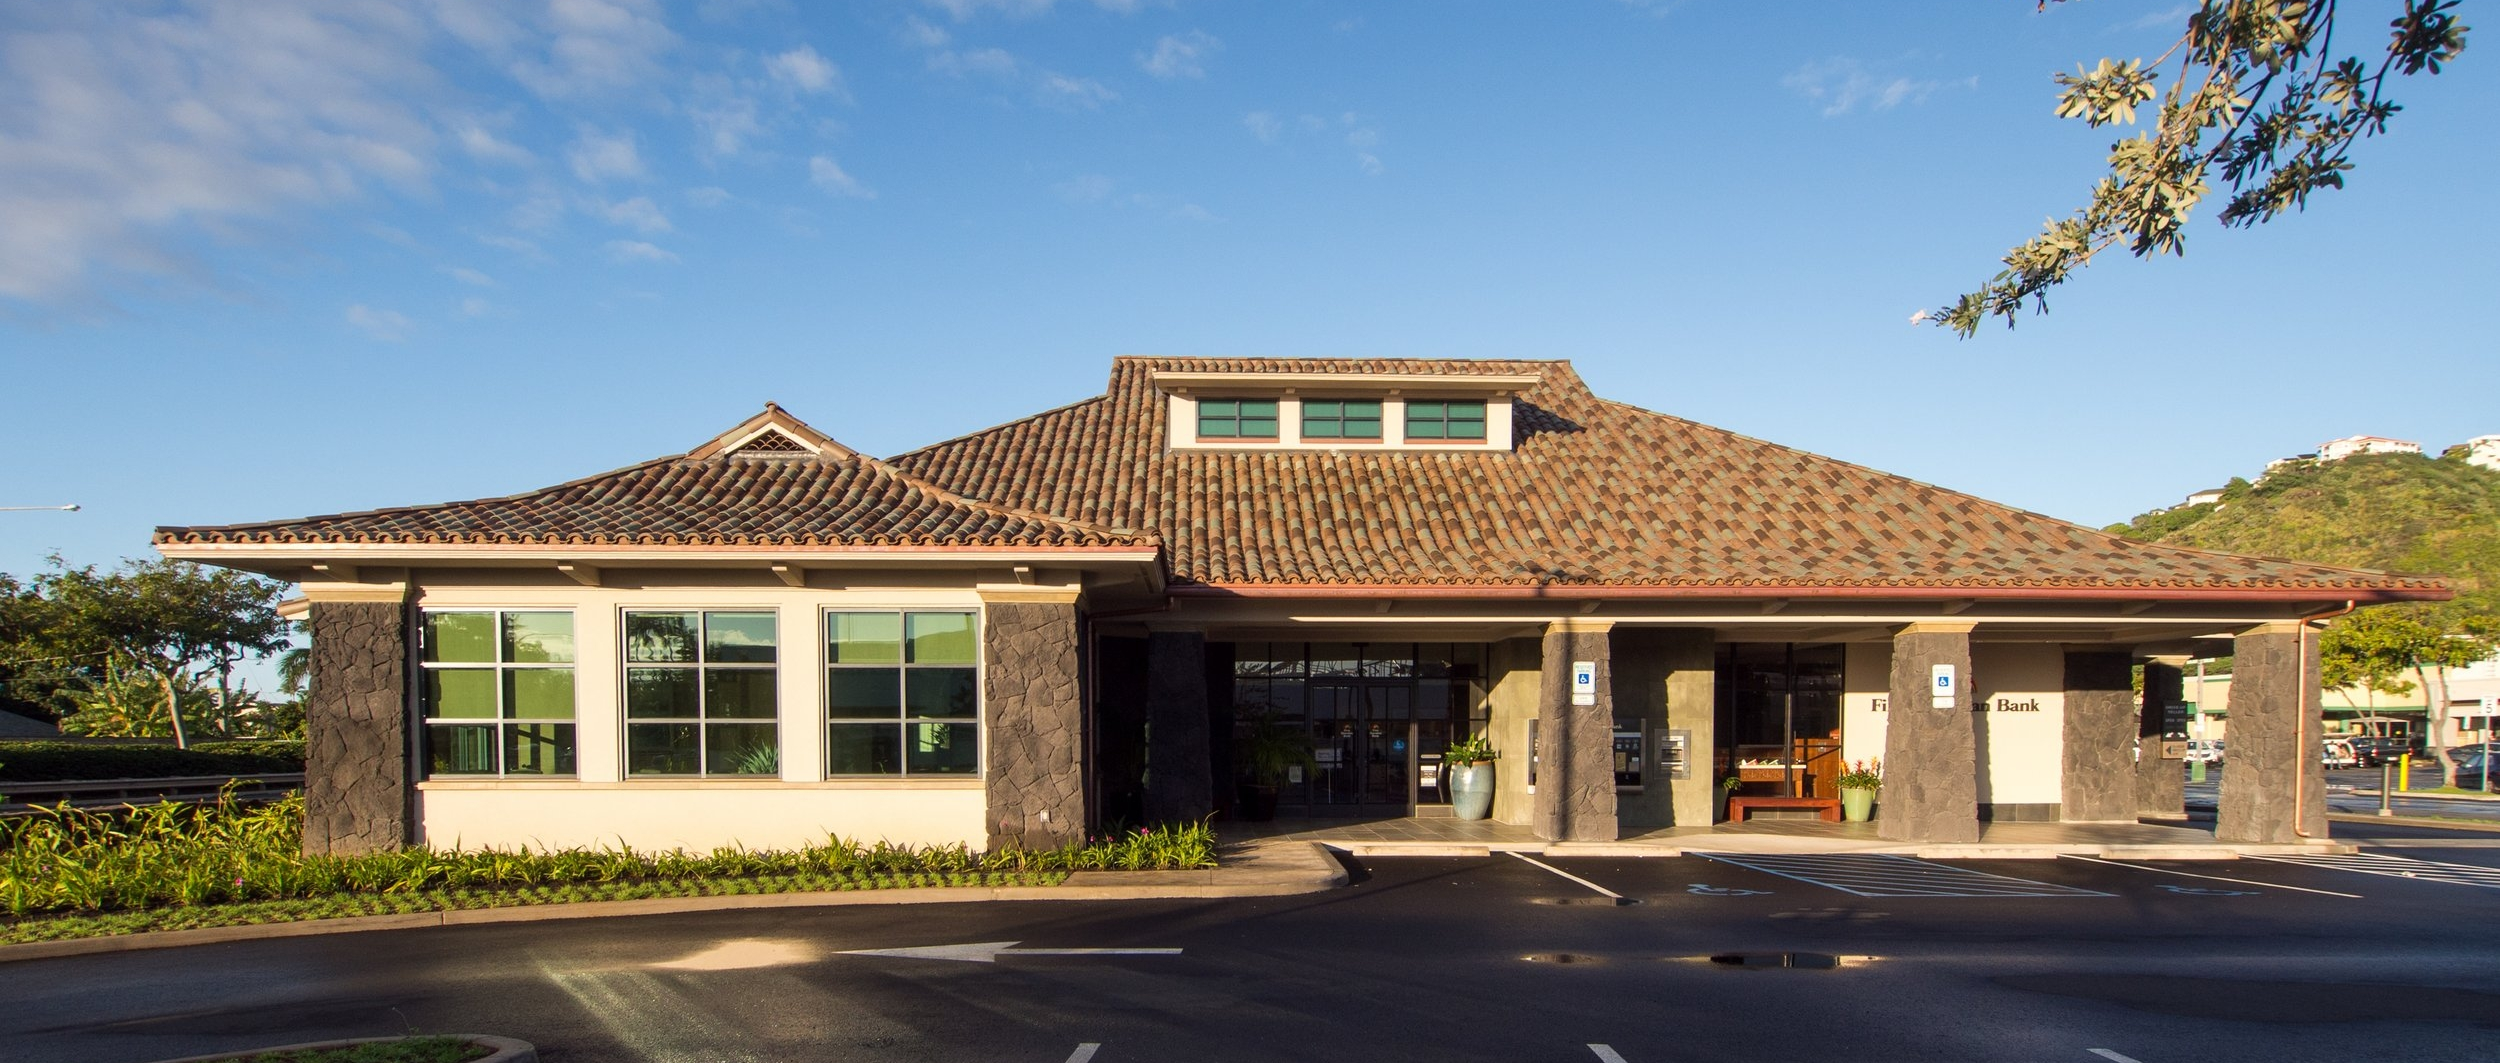 First Hawaiian Bank - Aina Haina Branch